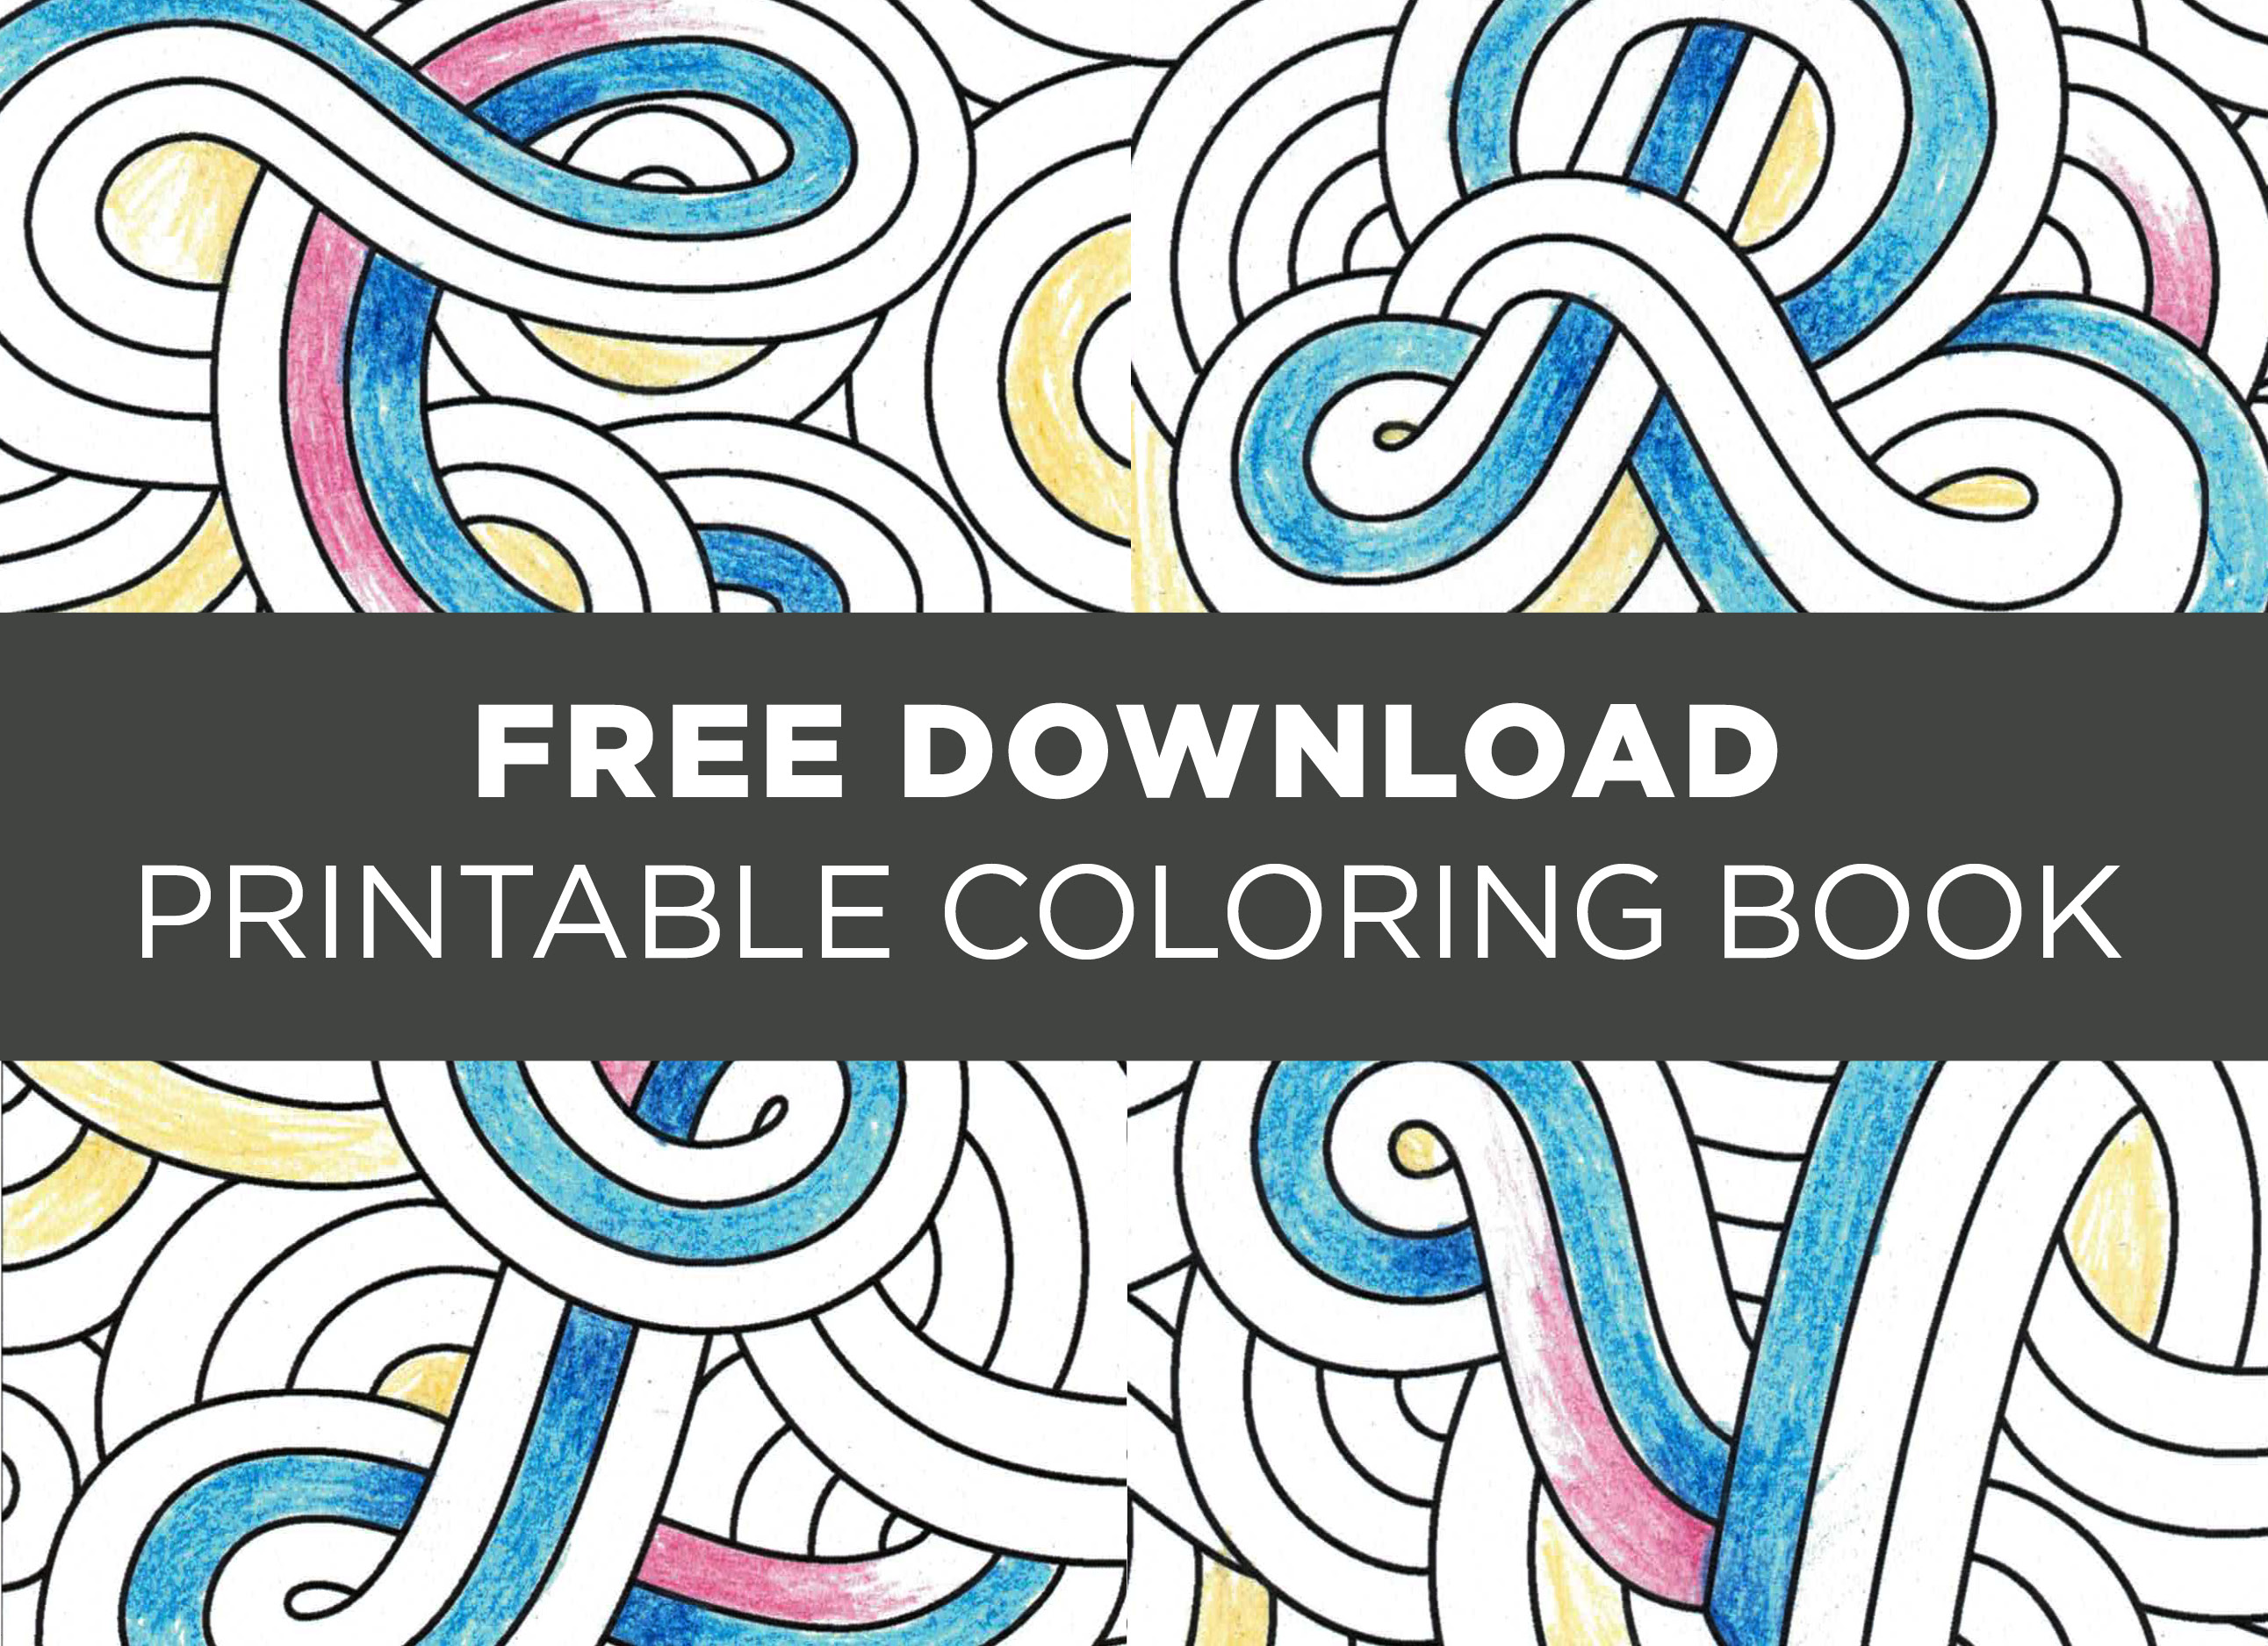 Download The Free CreativeLive Printable Coloring Book